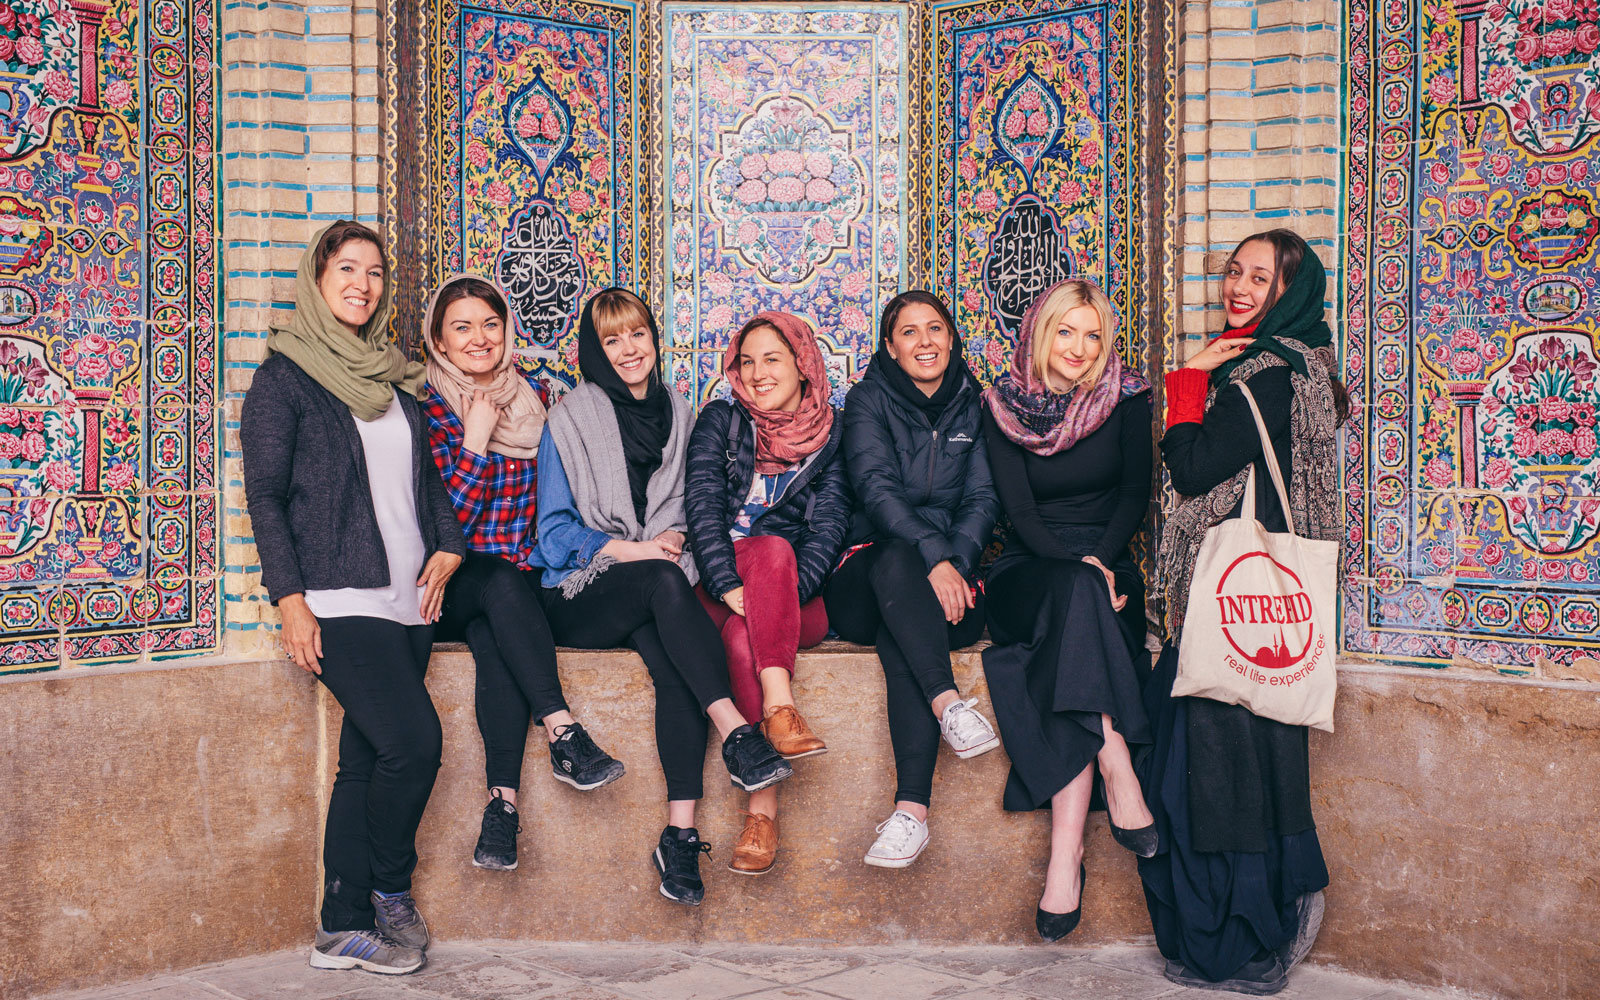 These Female-only Tours in the Middle East Let You Bond With the Women Who Live There